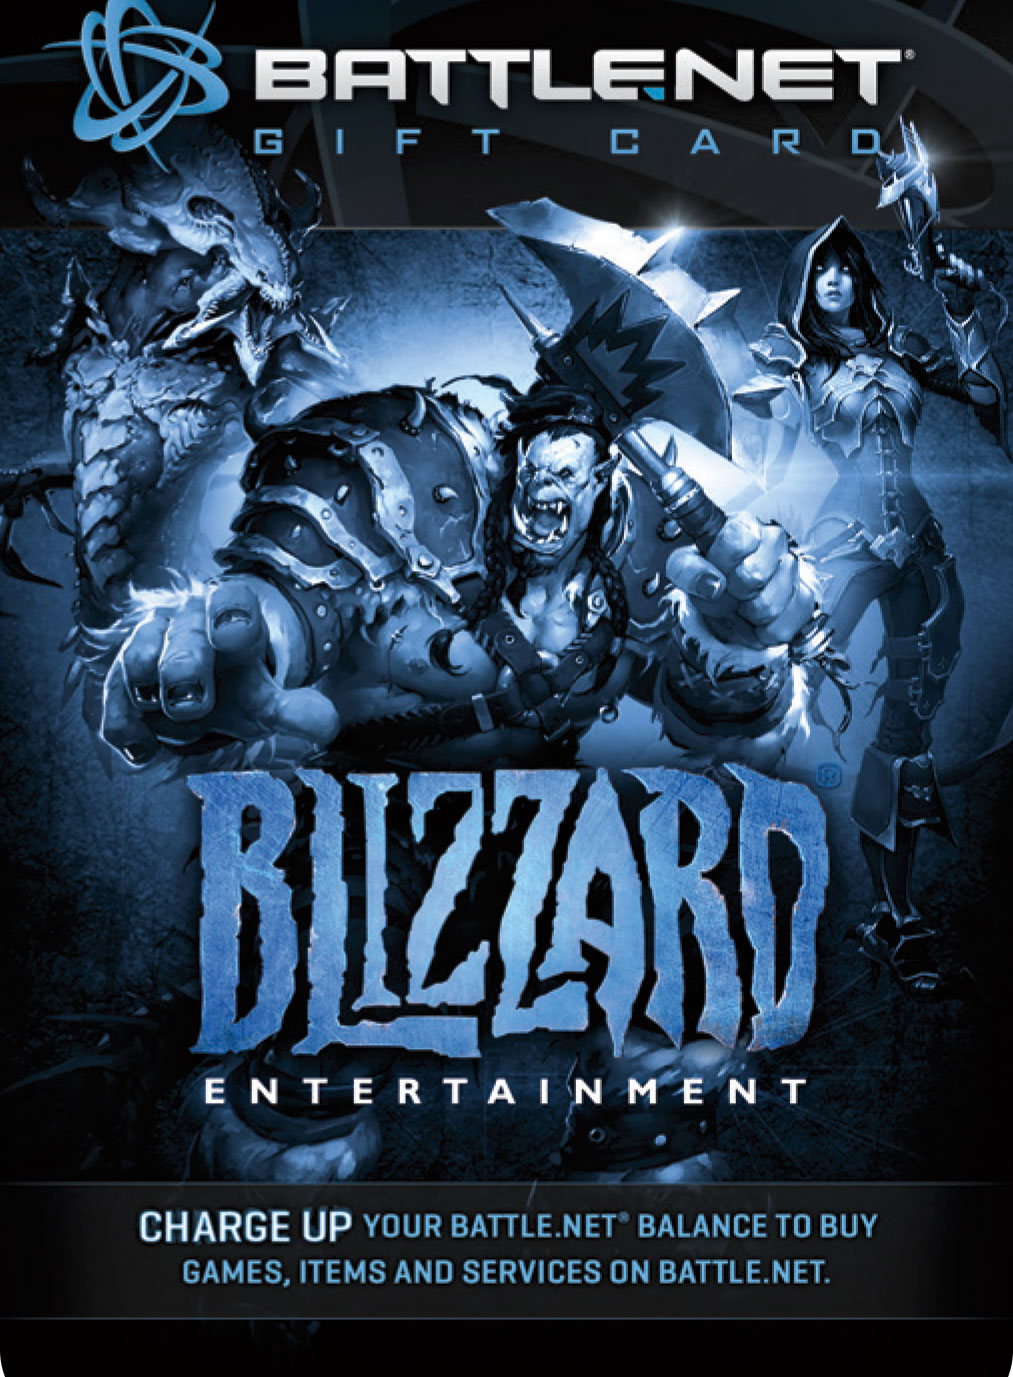 $20 Battle.net Store Gift Card Balance - Blizzard Entertainment [Digital Code] [Online Game Code] by Blizzard Entertainment